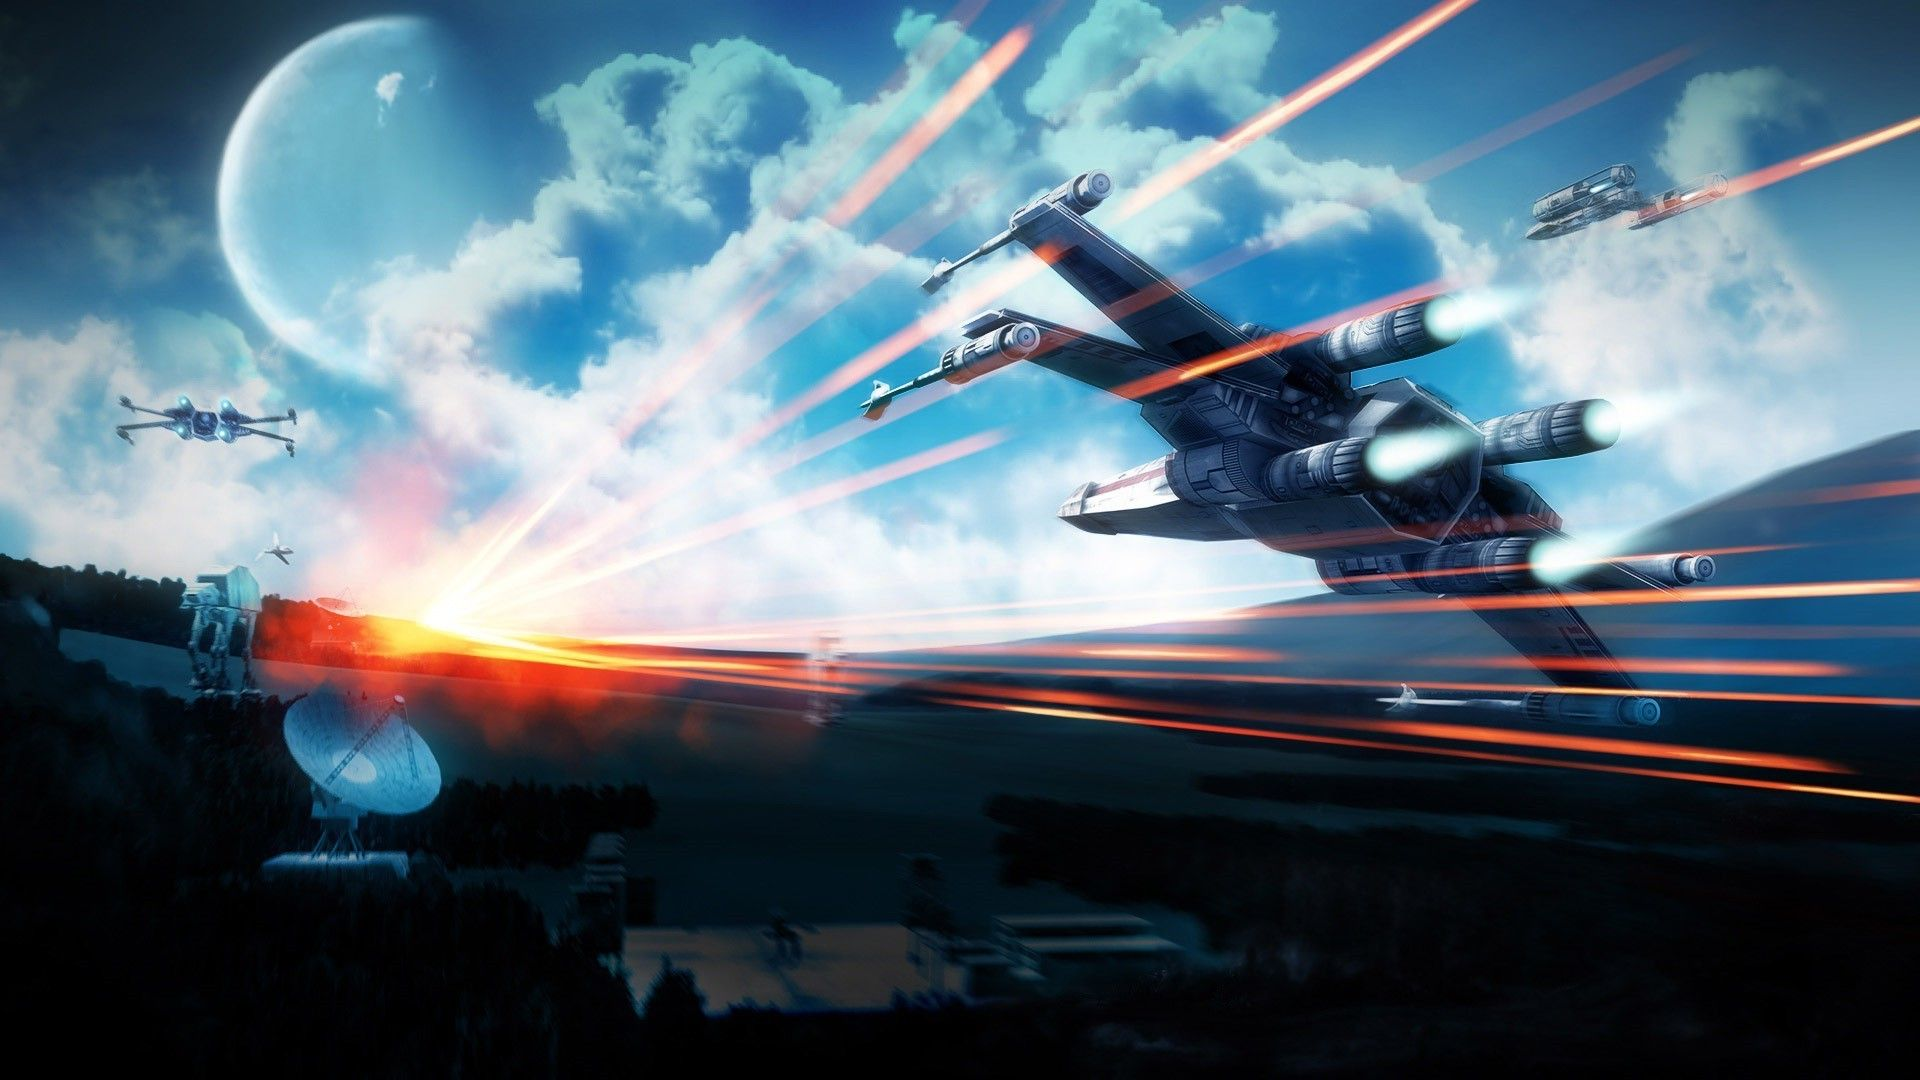 Star Wars X Wing Wallpapers Top Free Star Wars X Wing Backgrounds Wallpaperaccess